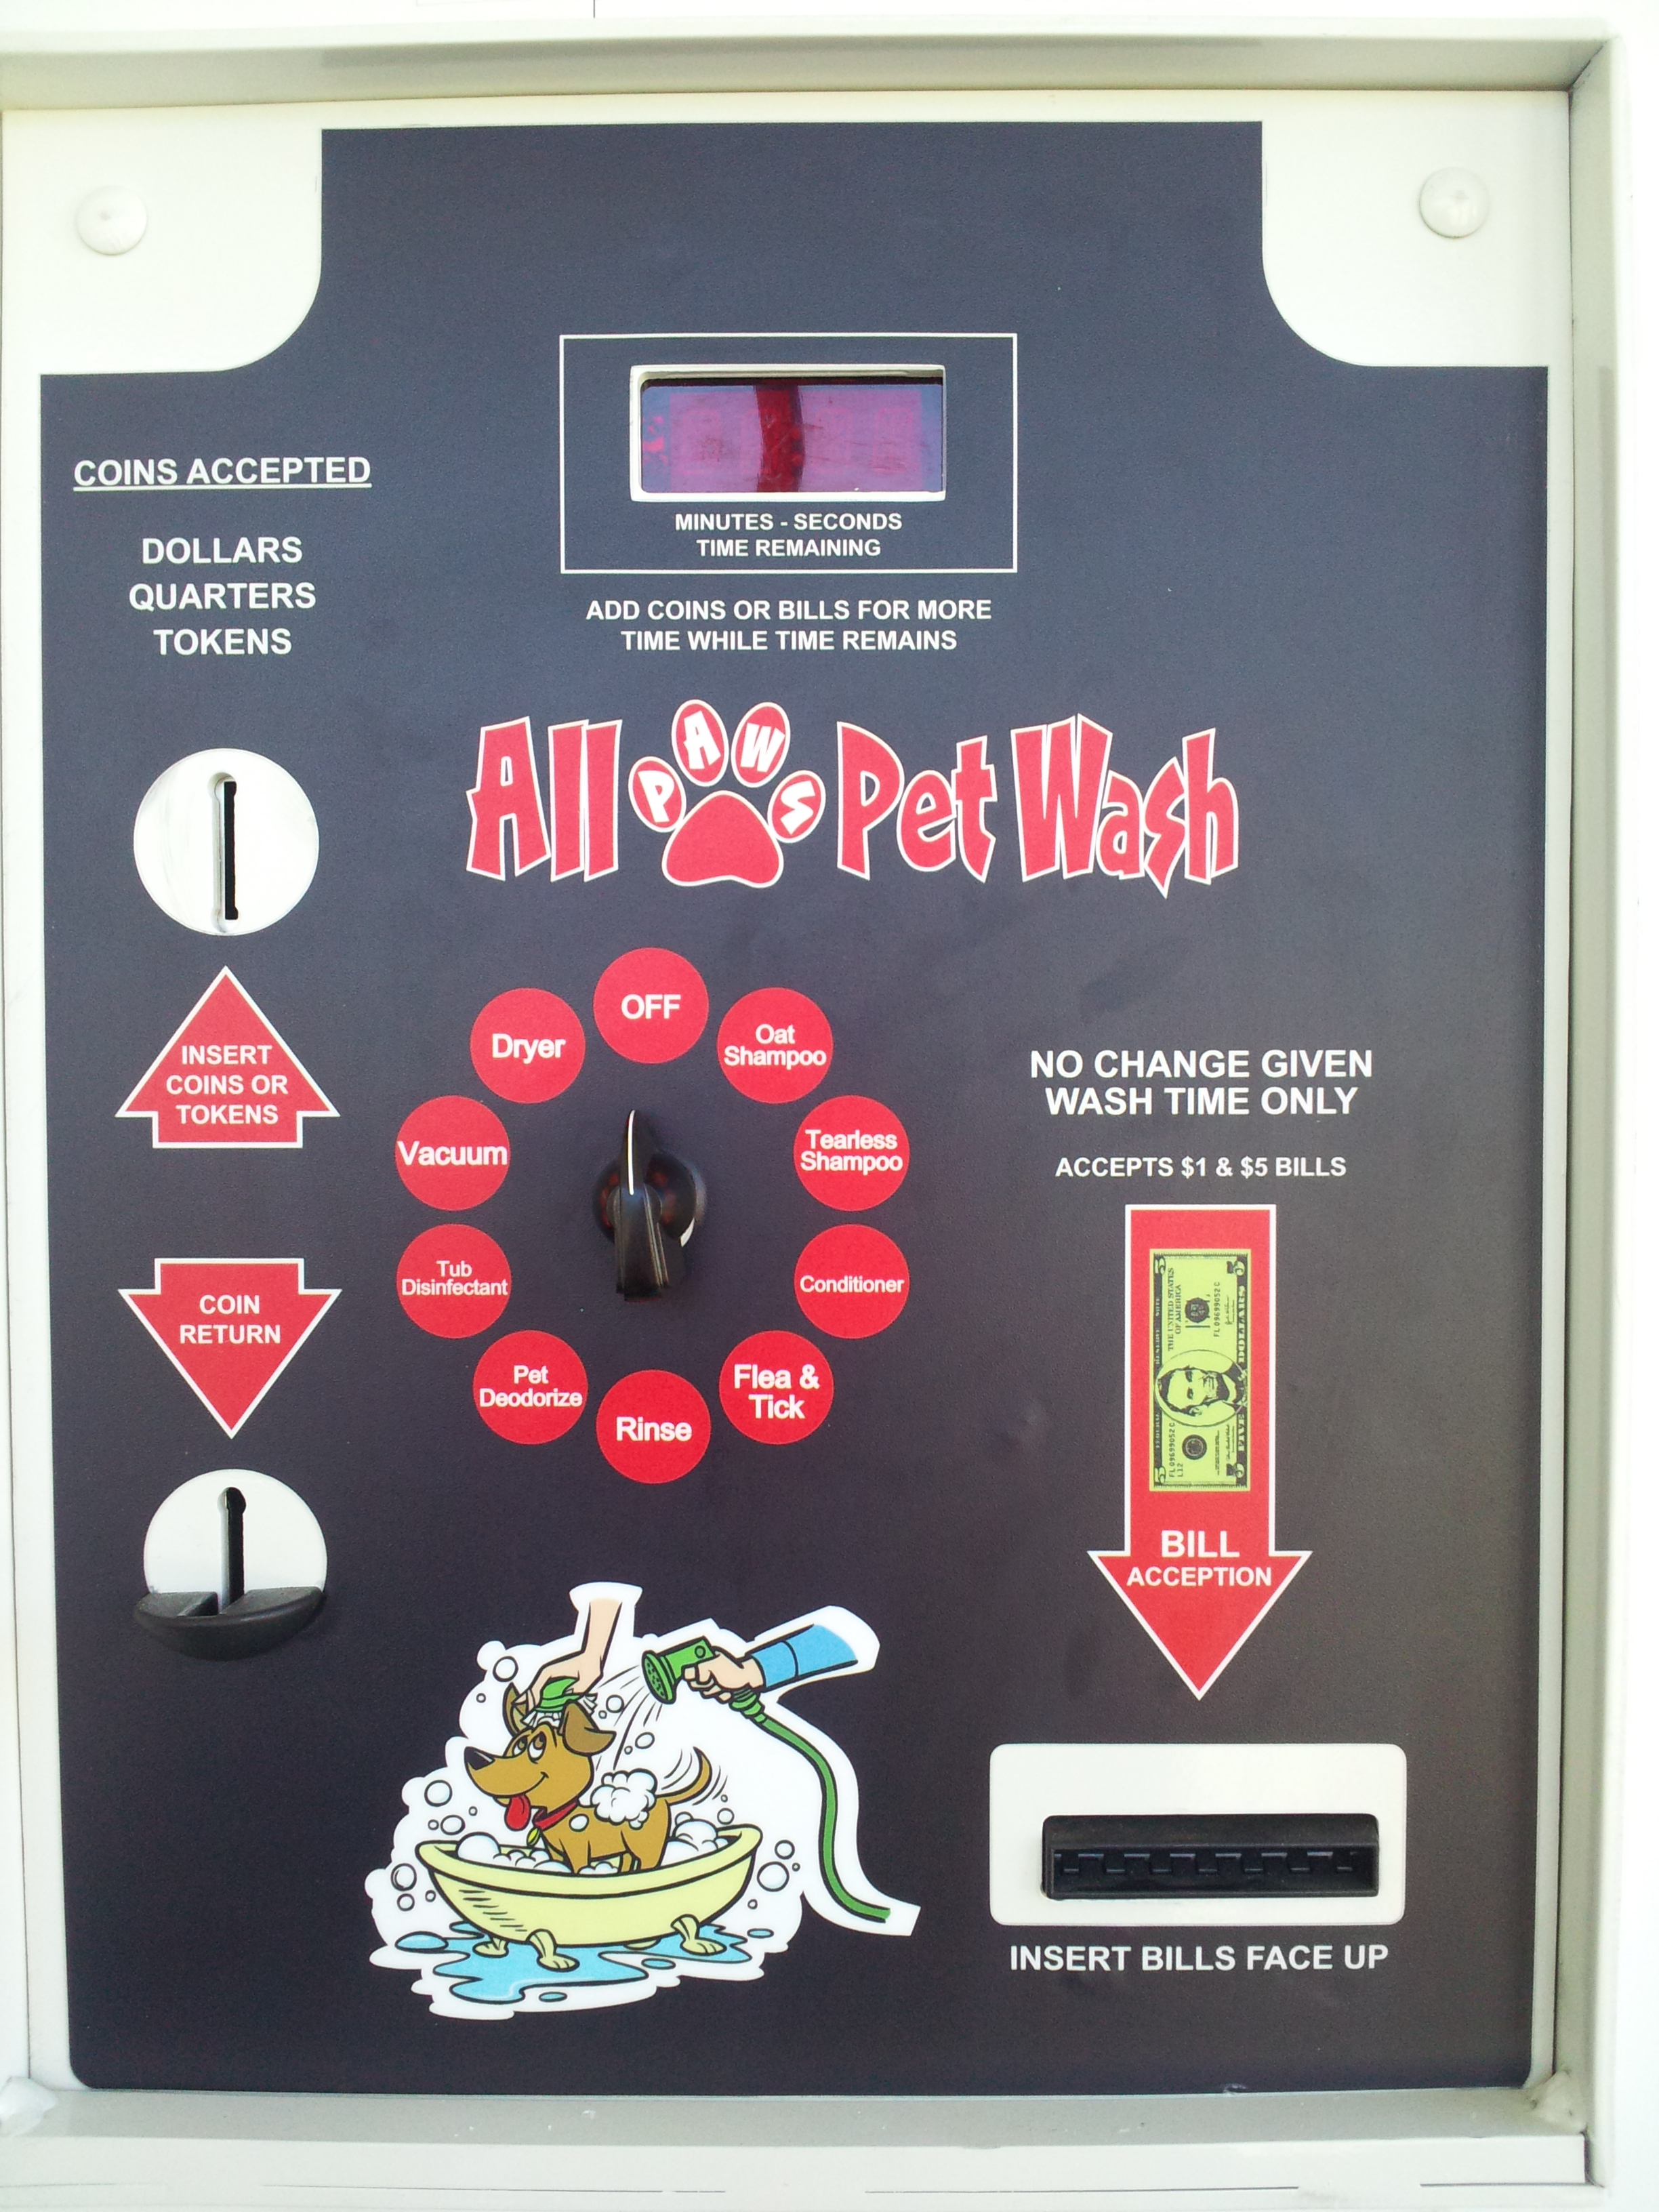 Coin operated pet wash dog bathing station all paws pet wash coin operated dog wash solutioingenieria Gallery